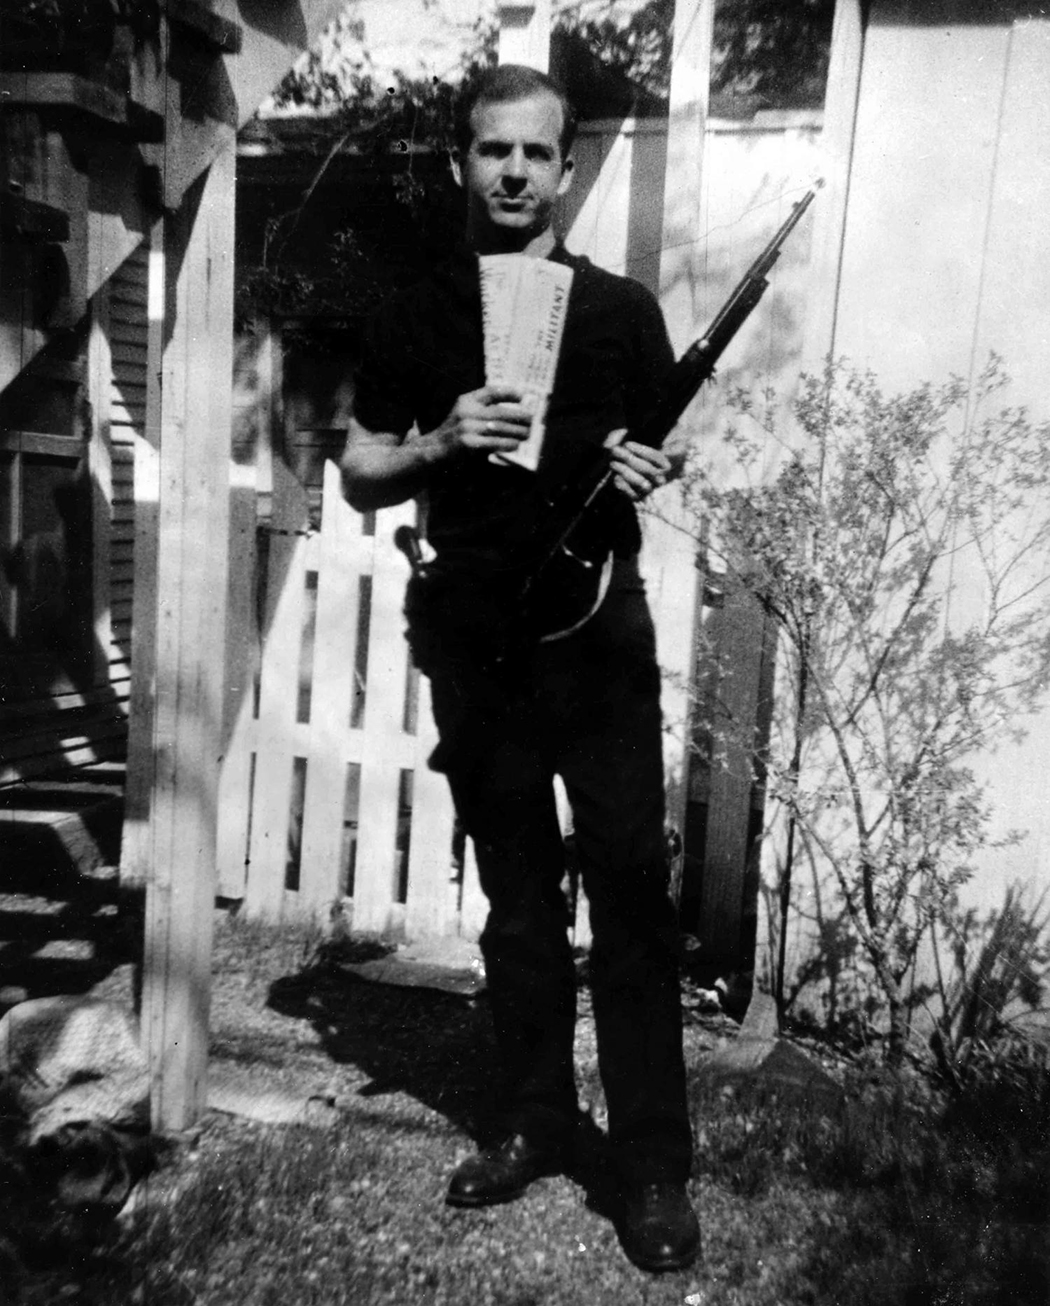 Lee Harvey Oswald in the backyard of 214 W. Neely, the duplex where he lived with wife, Marina, who took the infamous photo.(Photos courtesy of the Texas Panhandle Plains Museum, the Dallas PUblic Library and the Dallas Municipal archives)